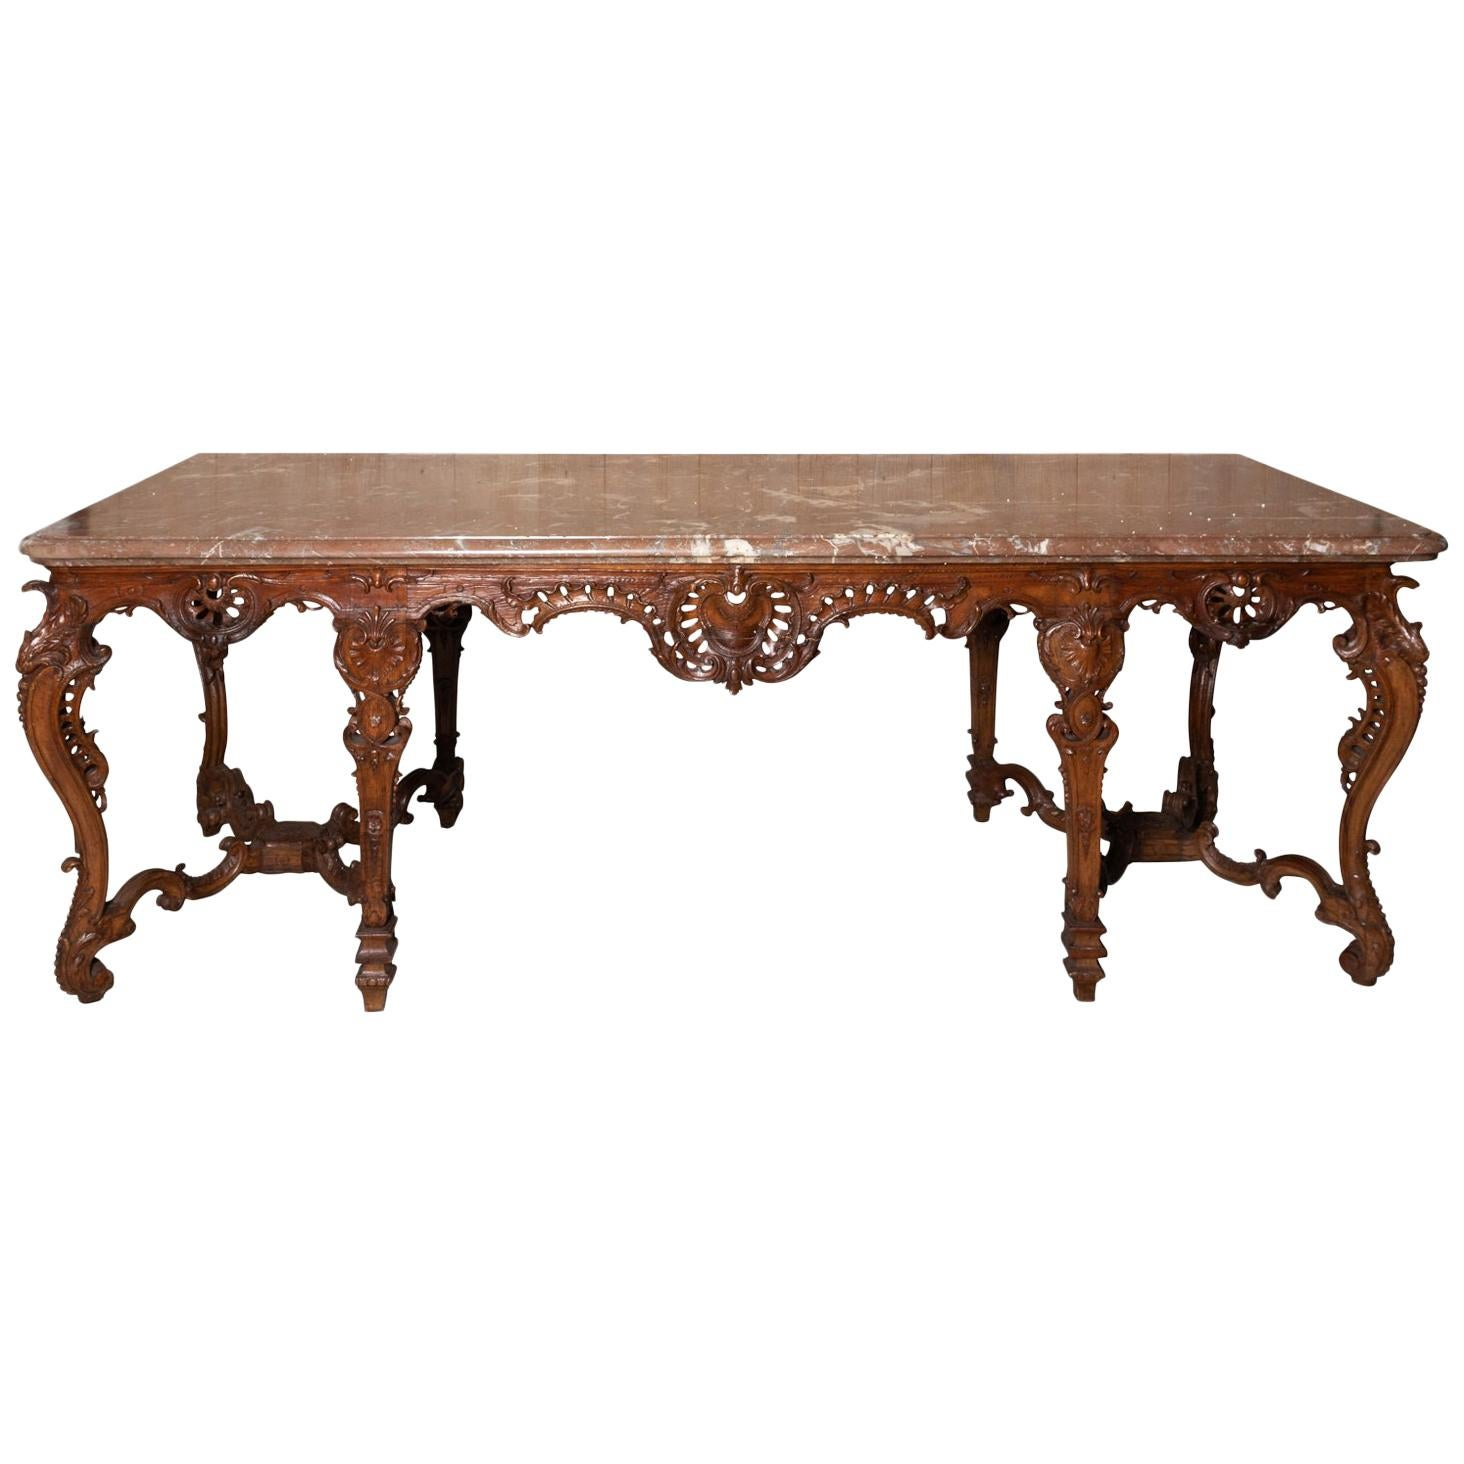 18th Century French Rococo Marble Top Console Table